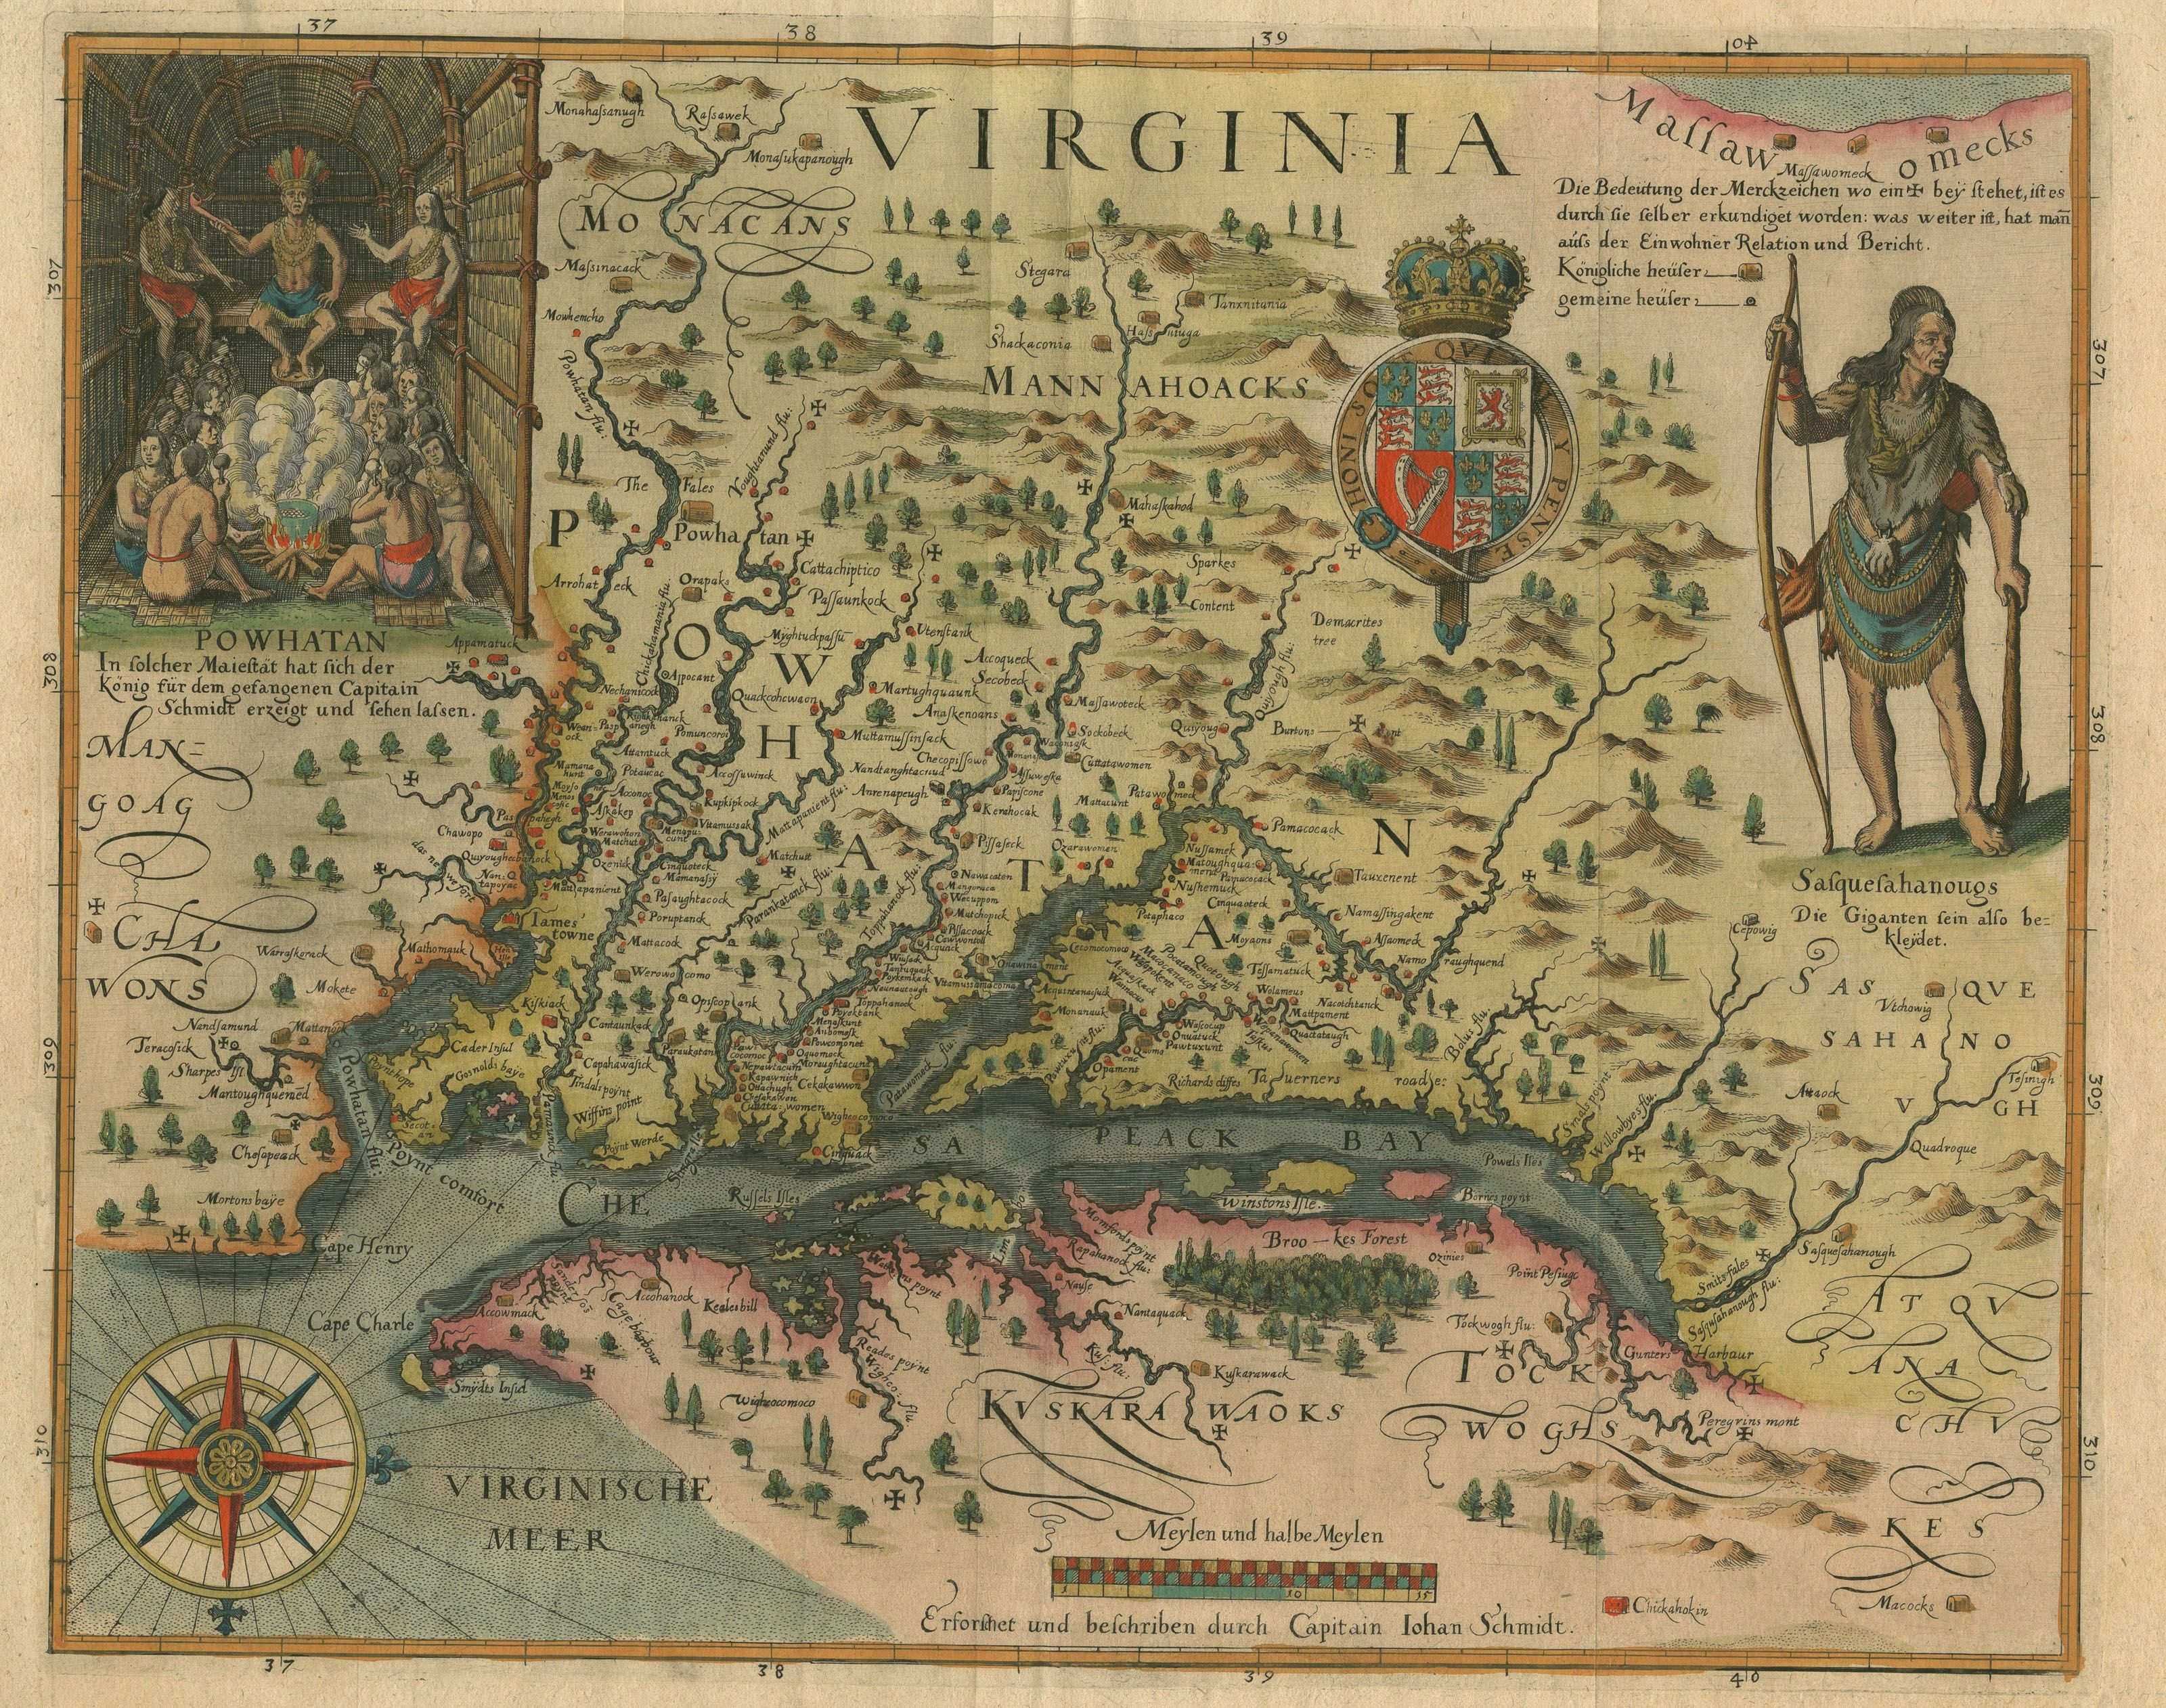 Amazing color map from 1628 of Maryland